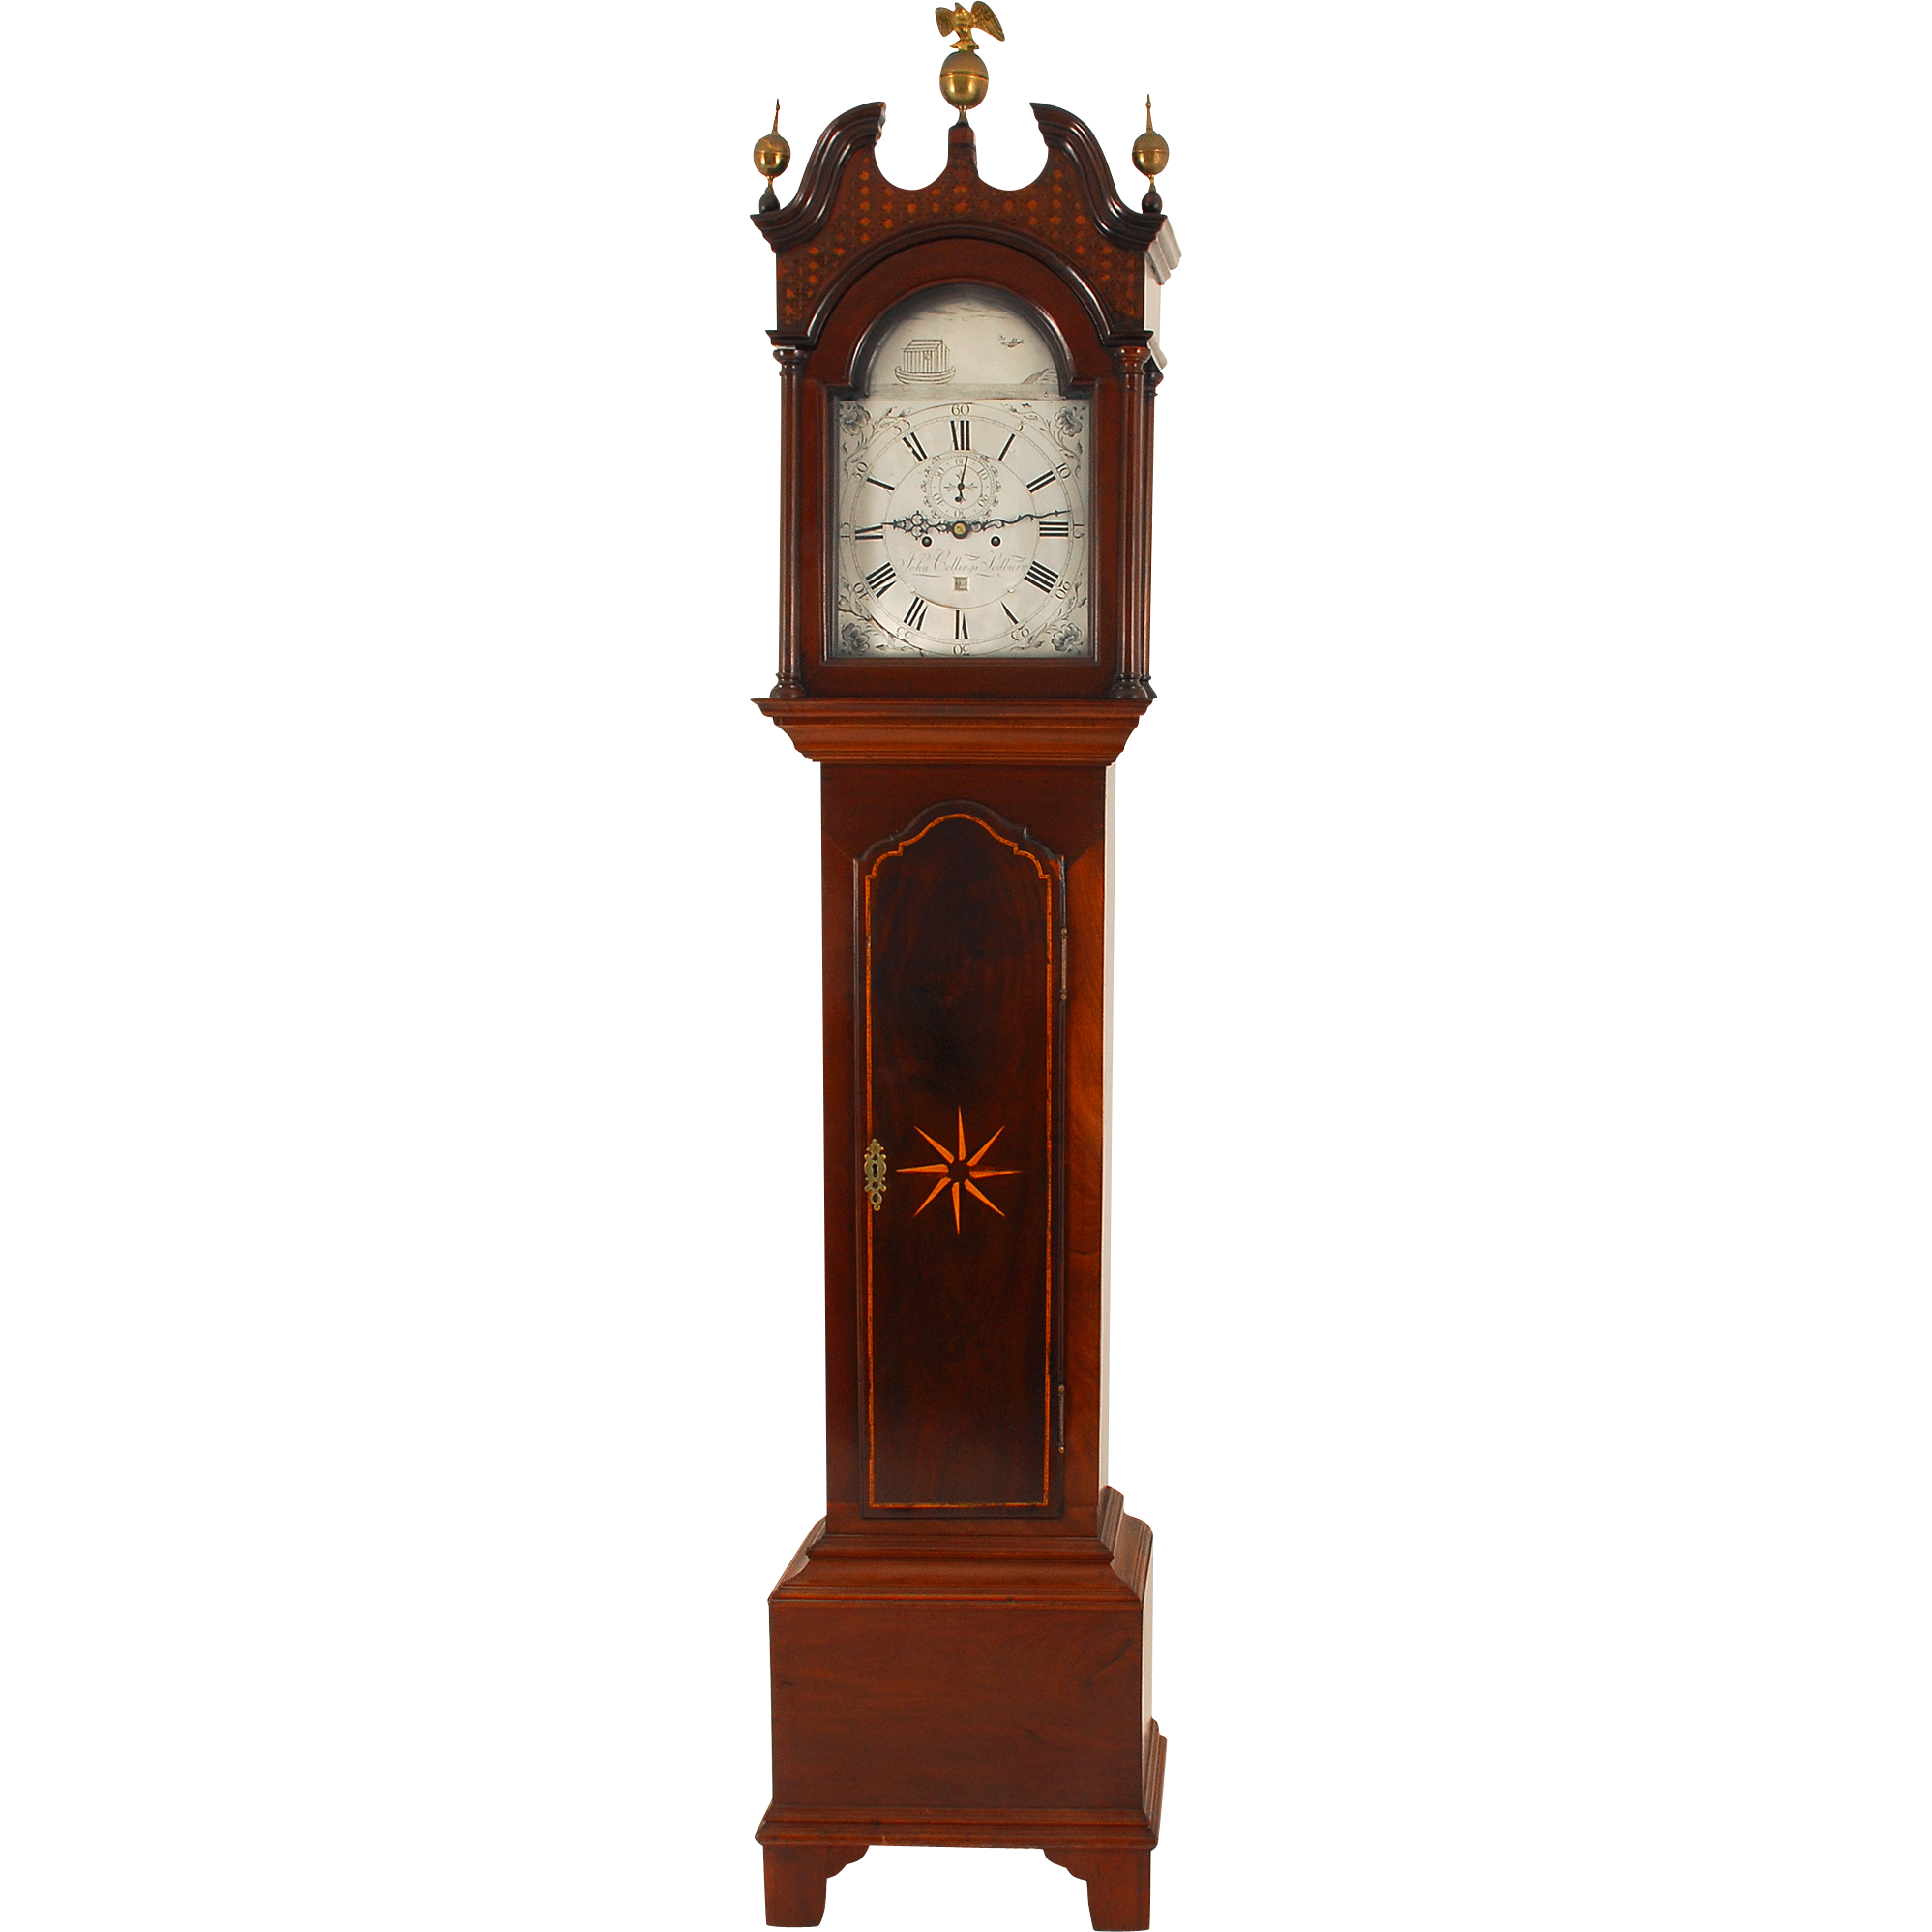 English Tall Case Clock with Engraved and Silvered Brass Dial by John Collings Sodbury